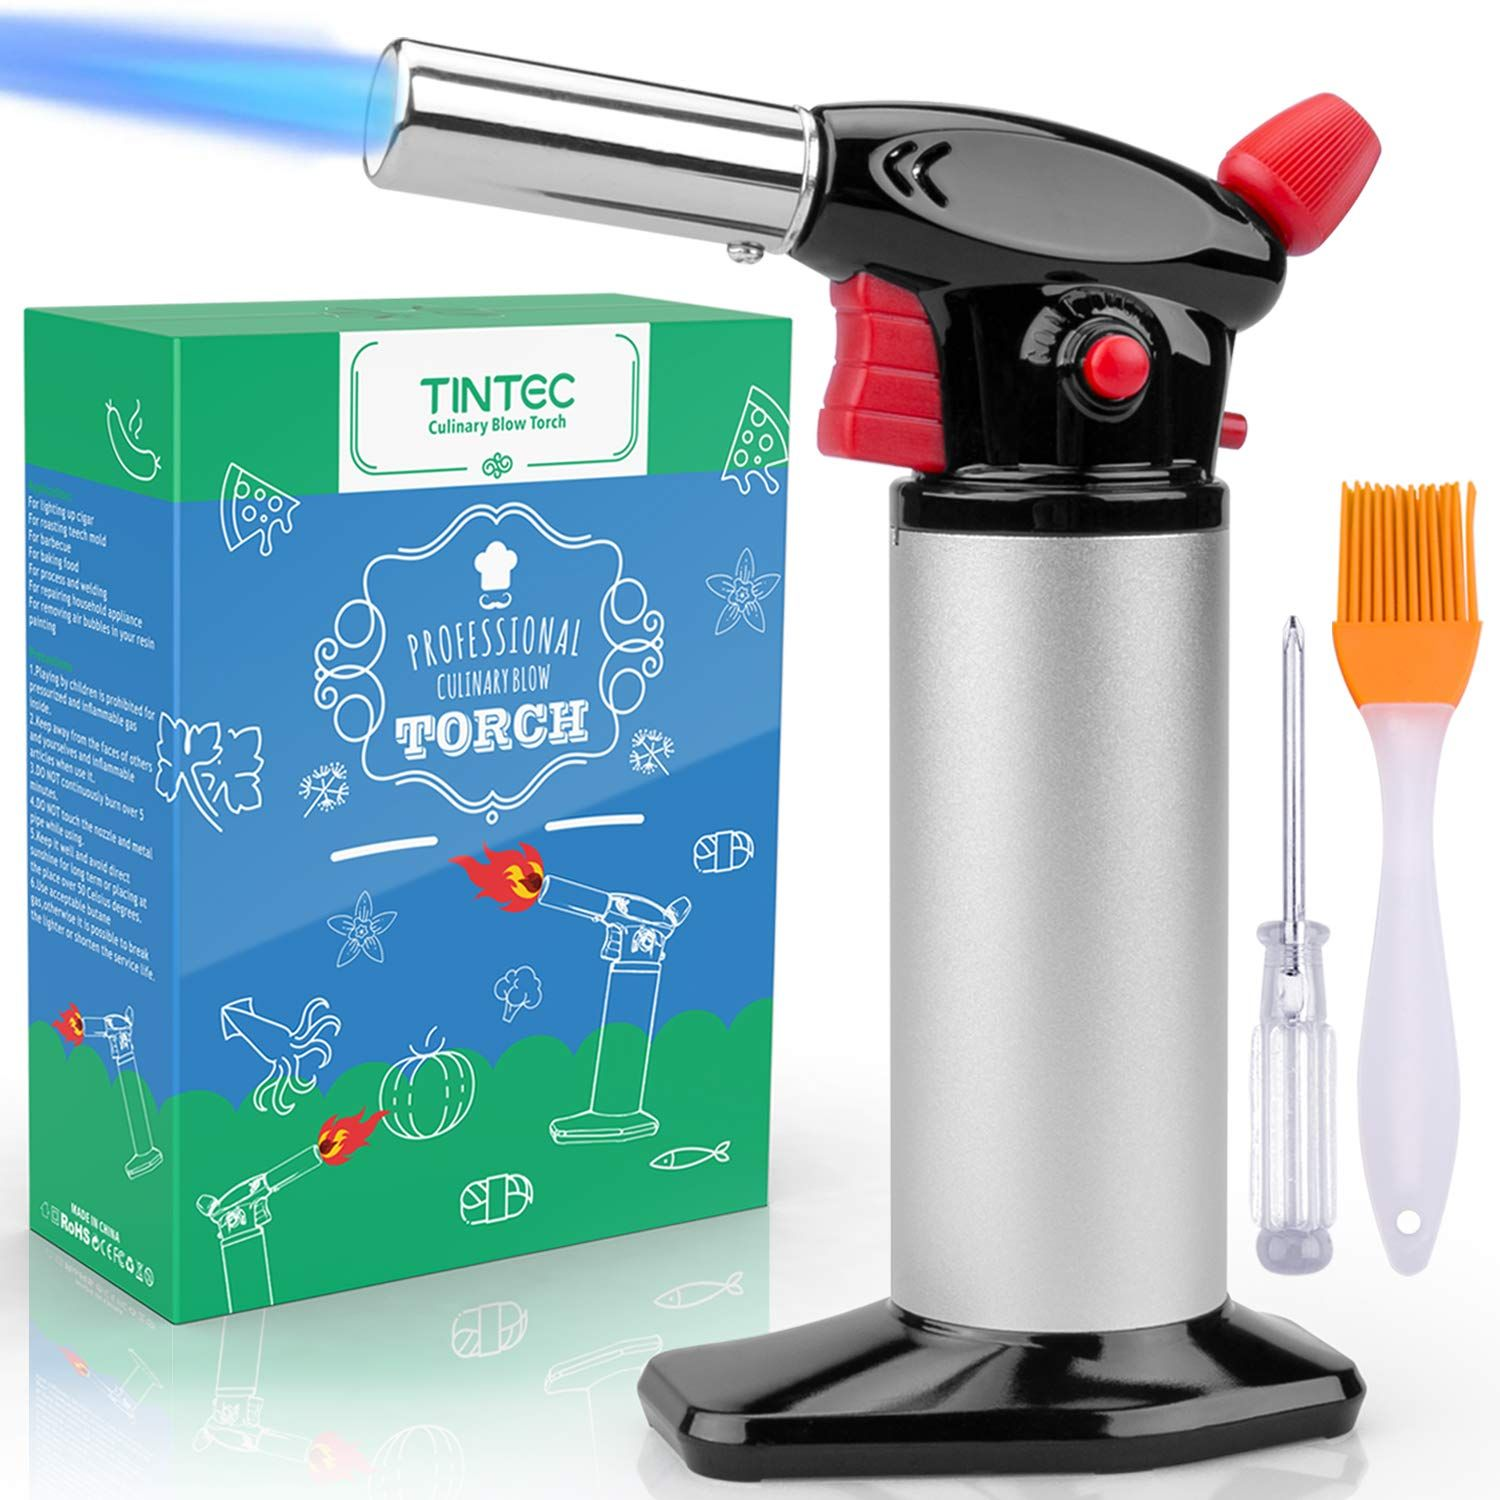 Cooking torch lighter tintec chef culinary blow torch